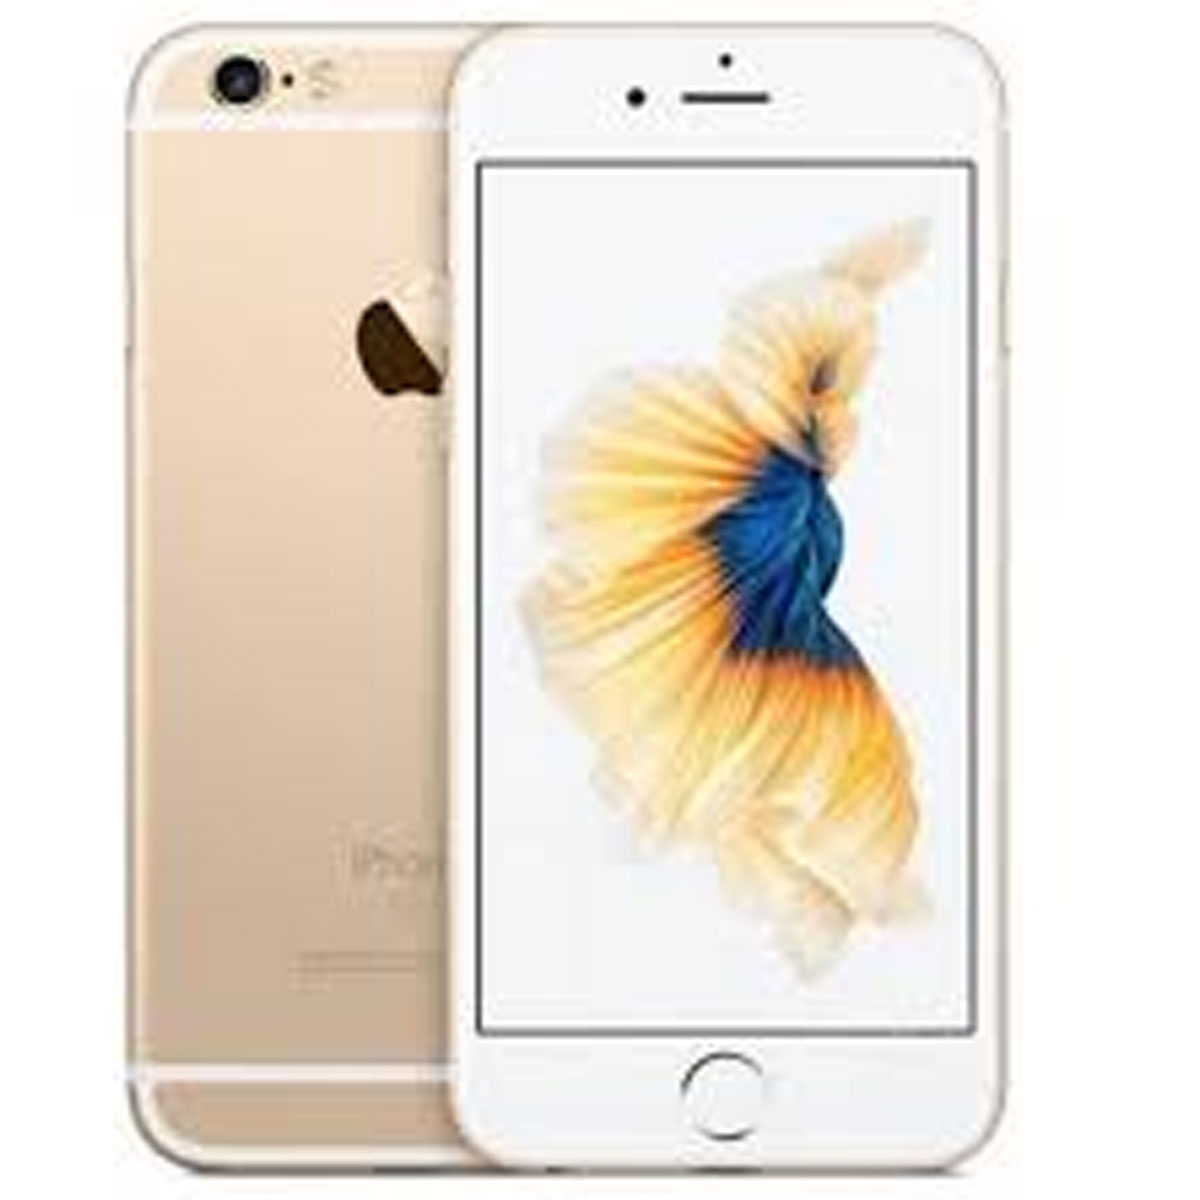 Apple Iphone 6s Plus Price In Pakistan 2020 Priceoye